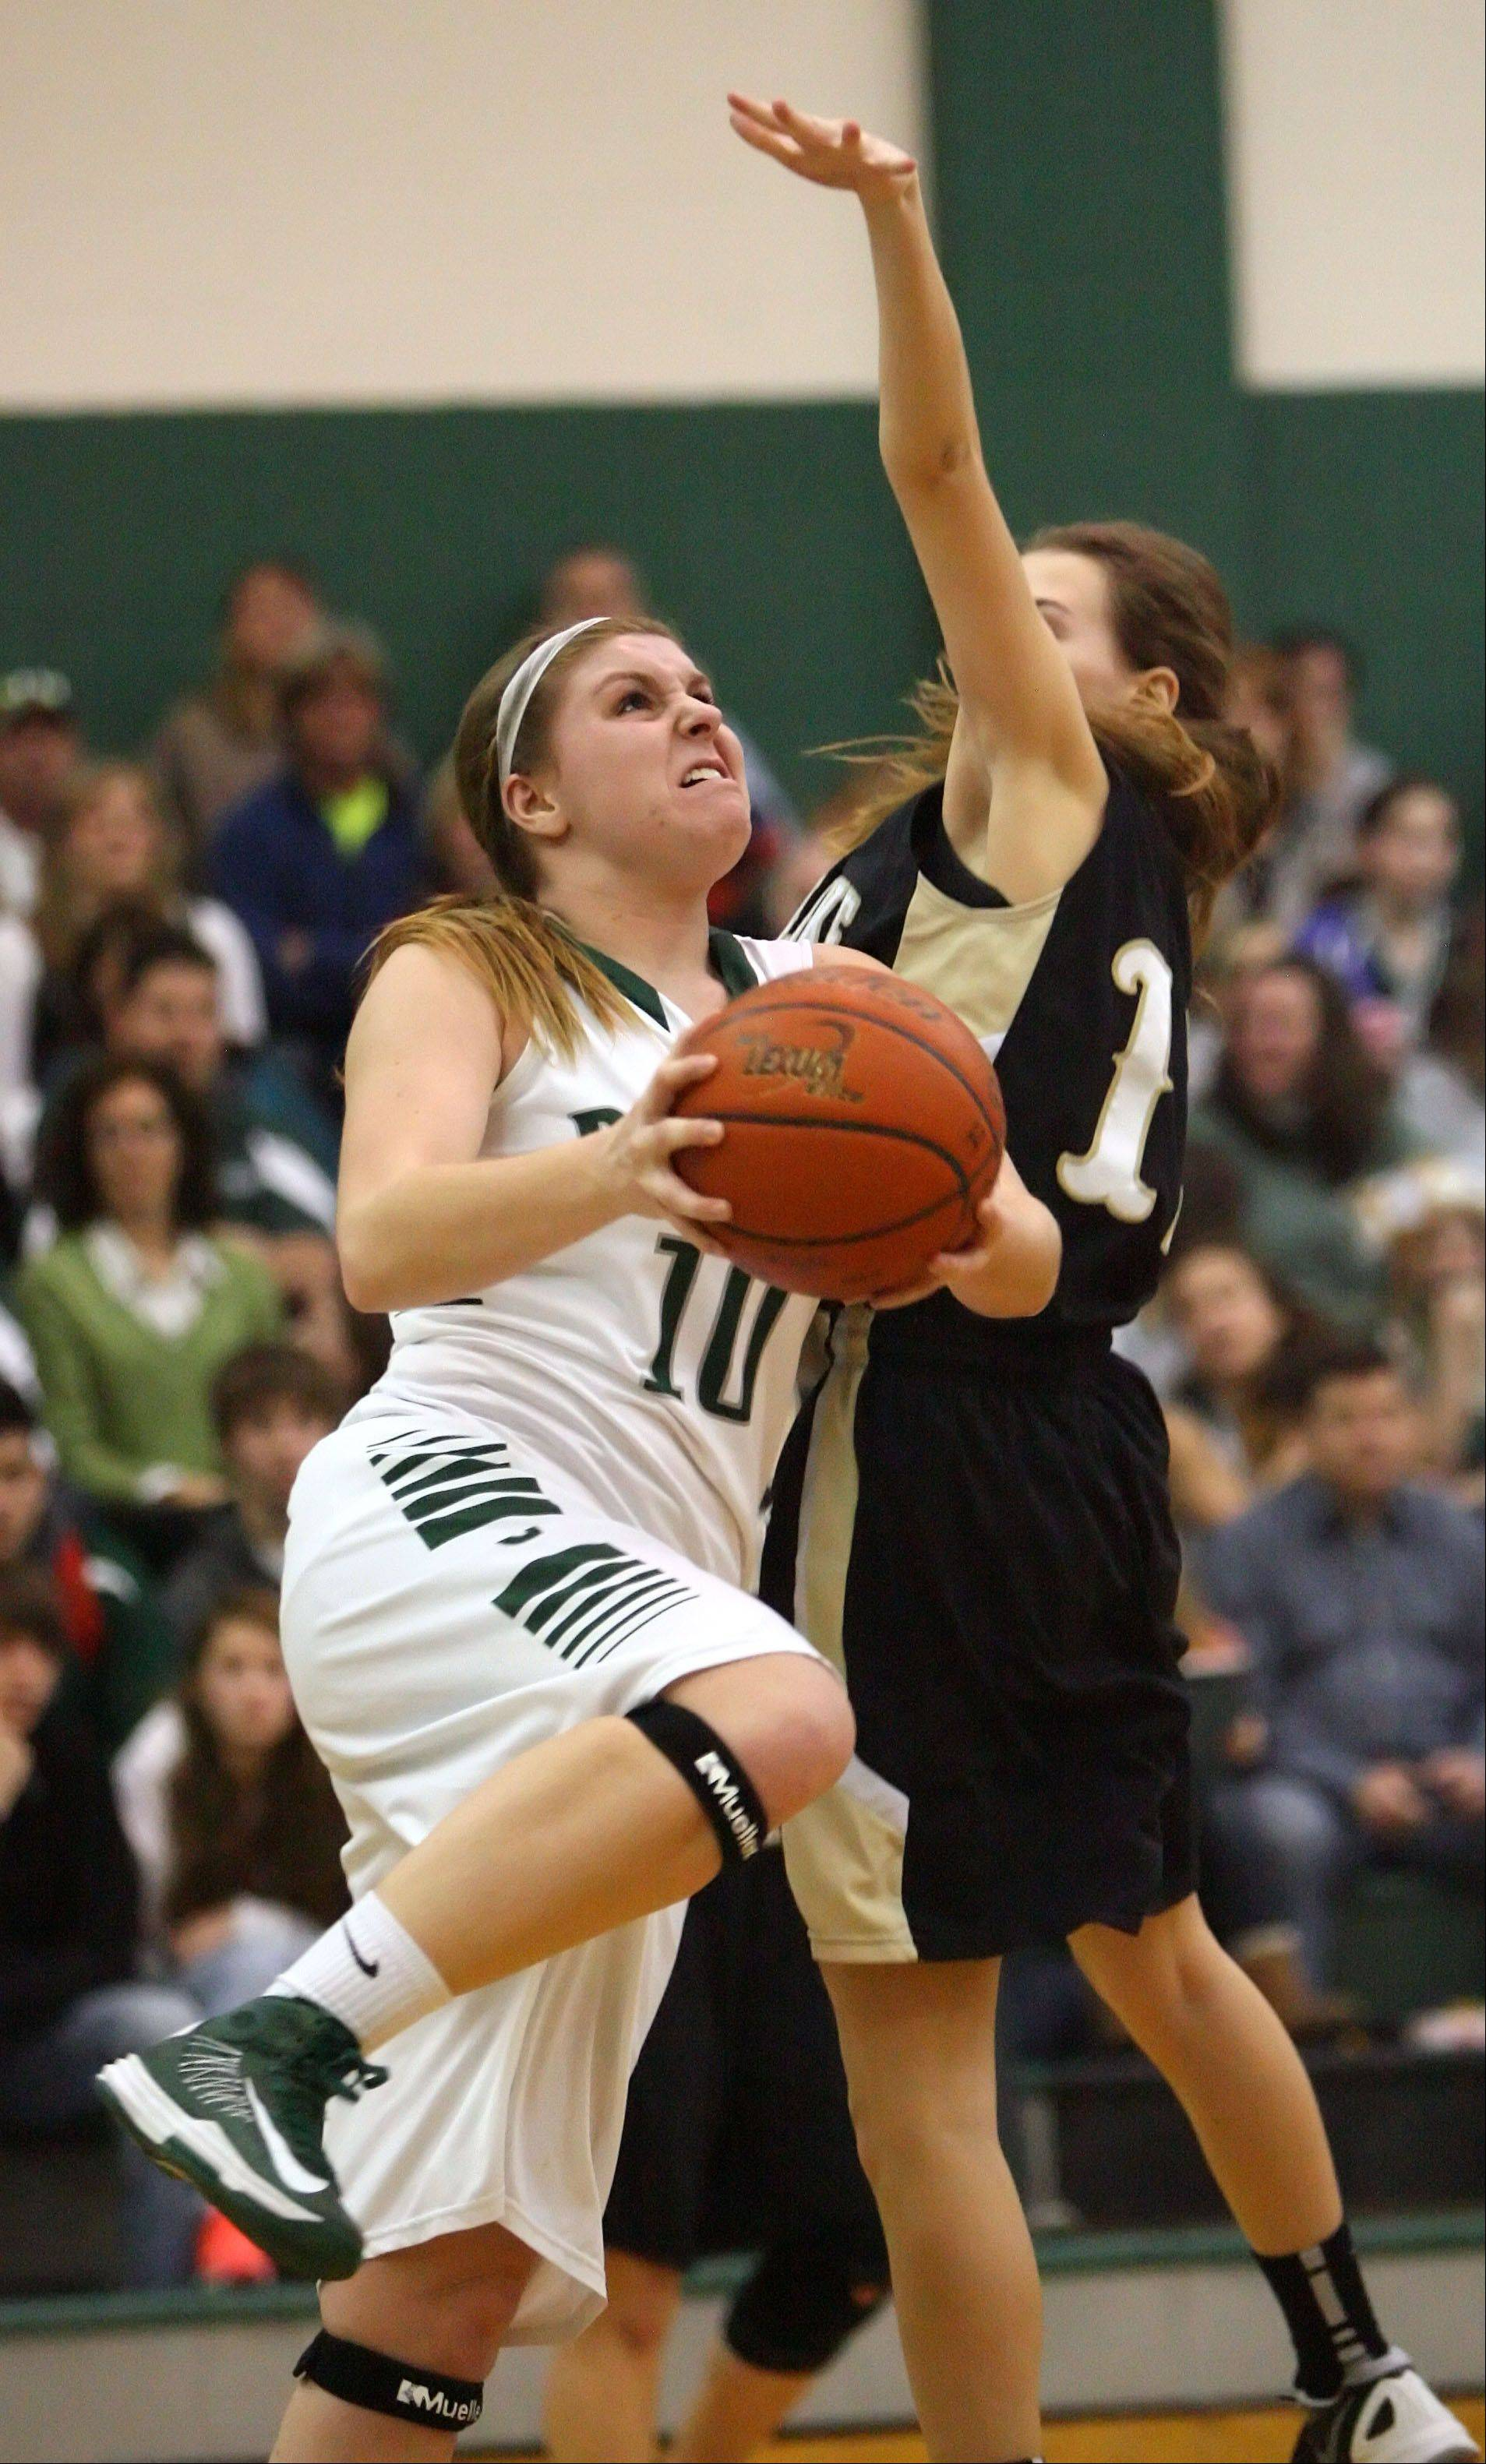 Grayslake Central's Maddy Miller, left, drives on Grayslake North's Emily Dugan during action last season. Miller is one of four returning starters for the Rams.